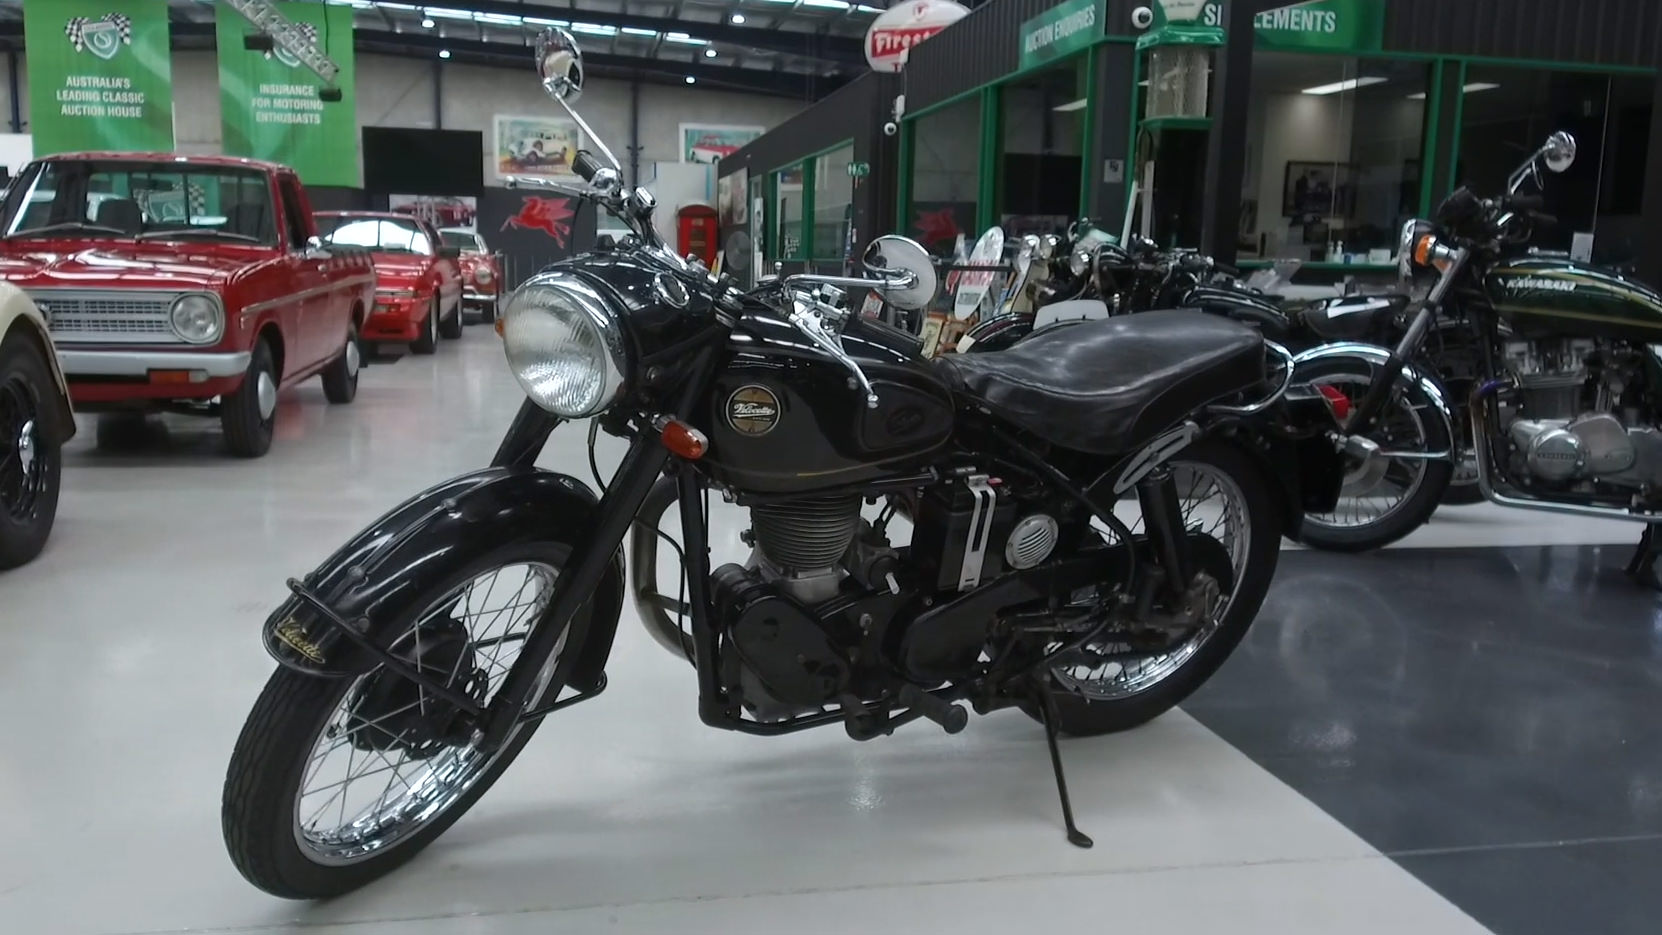 1957 Velocette MSS500 Motorcycle - 2021 Shannons Summer Timed Online Auction